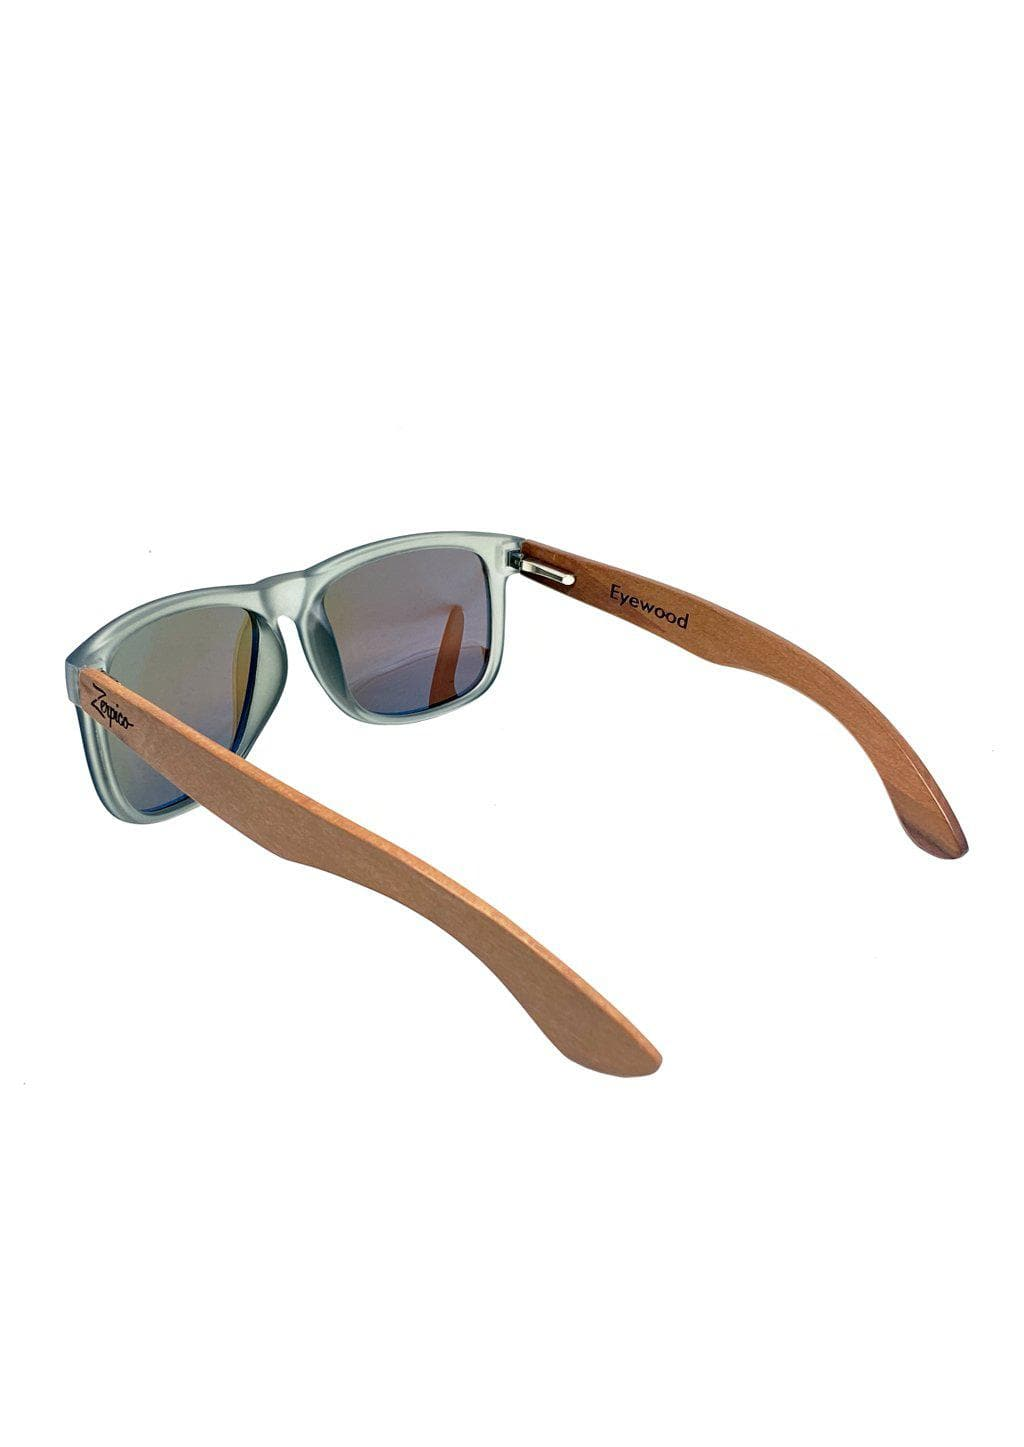 Eyewood Wayfarer - Mist - Beautiful wooden sunglasses with foggy transparent front with awesome blue mirror lenses. From the back.